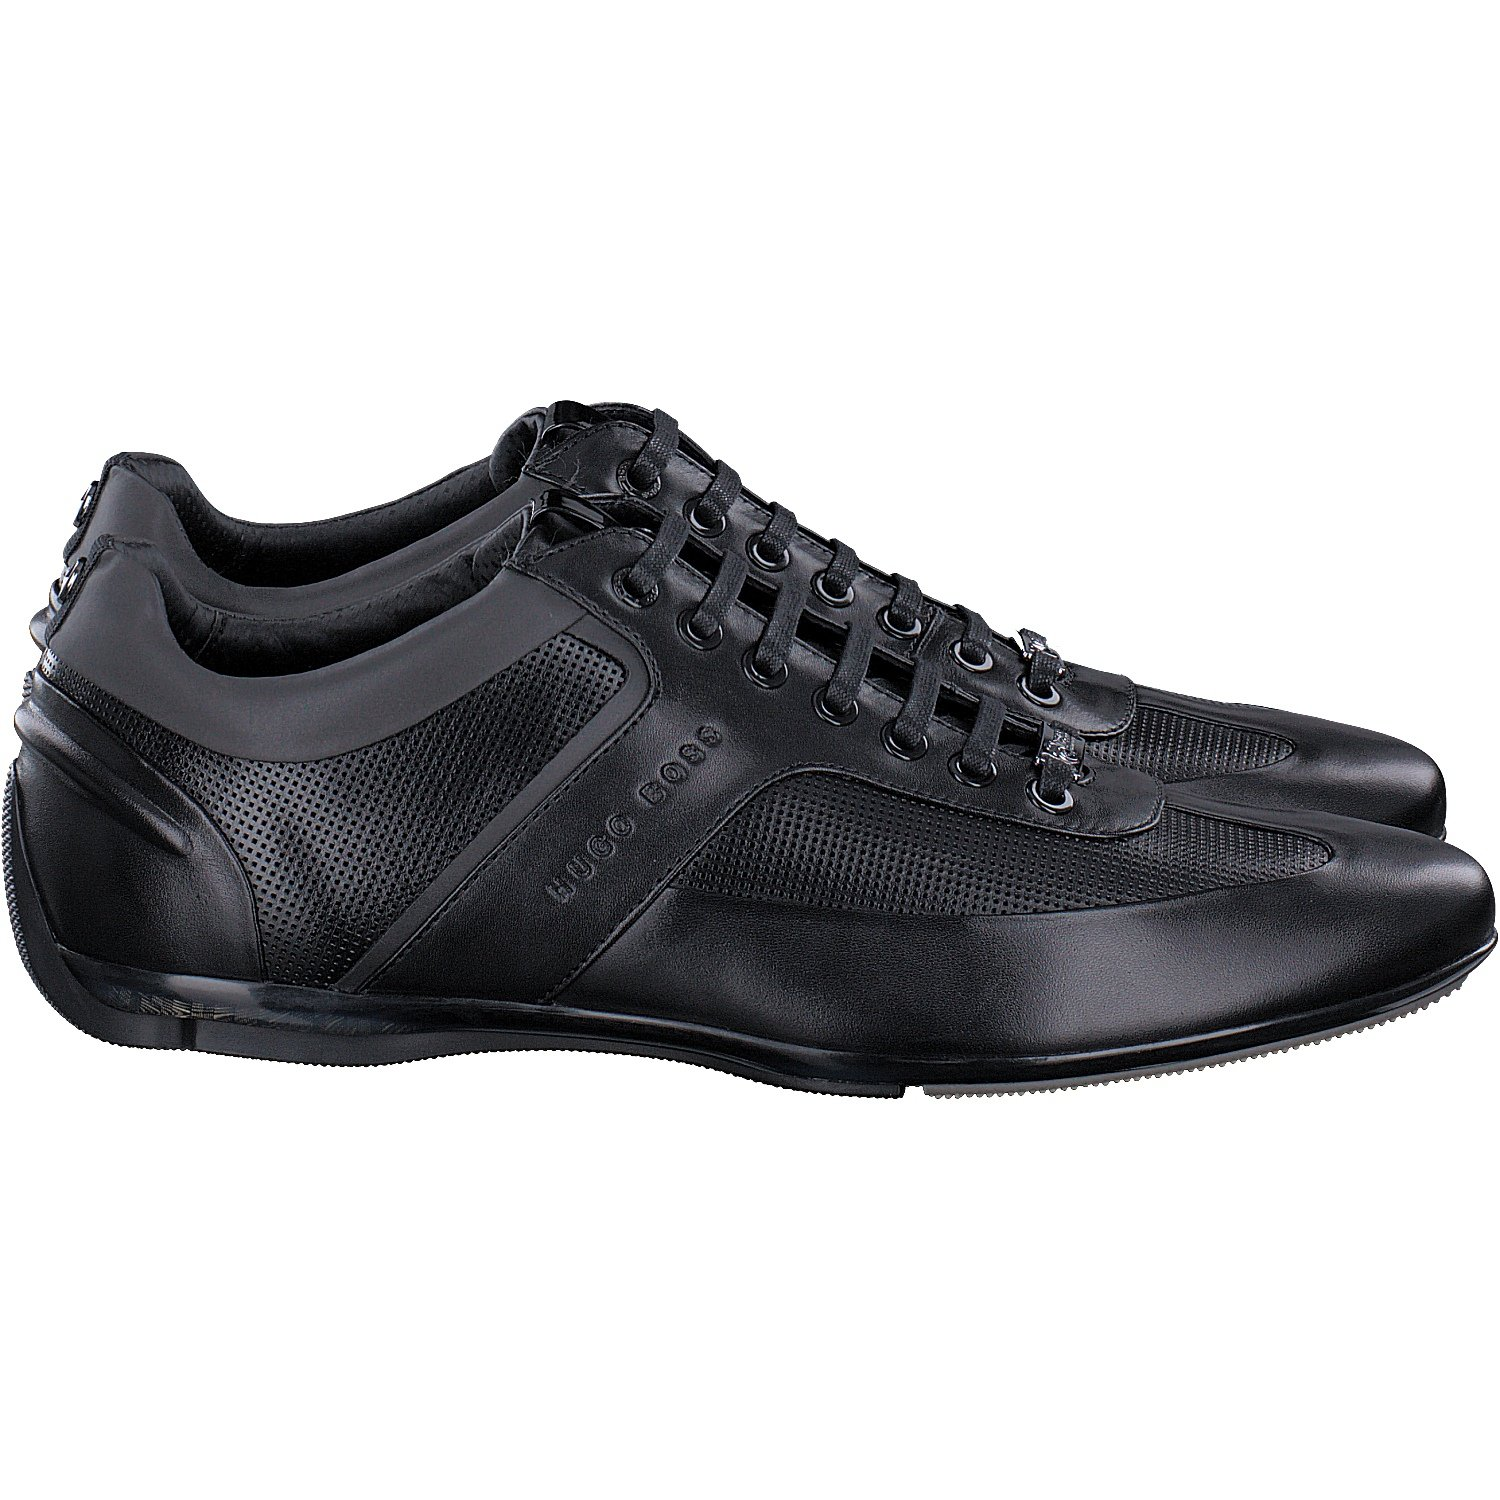 4e9761aaa BOSS Hugo Mercedes AMG Formula 1 F1 Black Leather Driving Trainers Sporty  Lowp MBPR 5 UK, 7 USA, 39 EU: Amazon.co.uk: Shoes & Bags